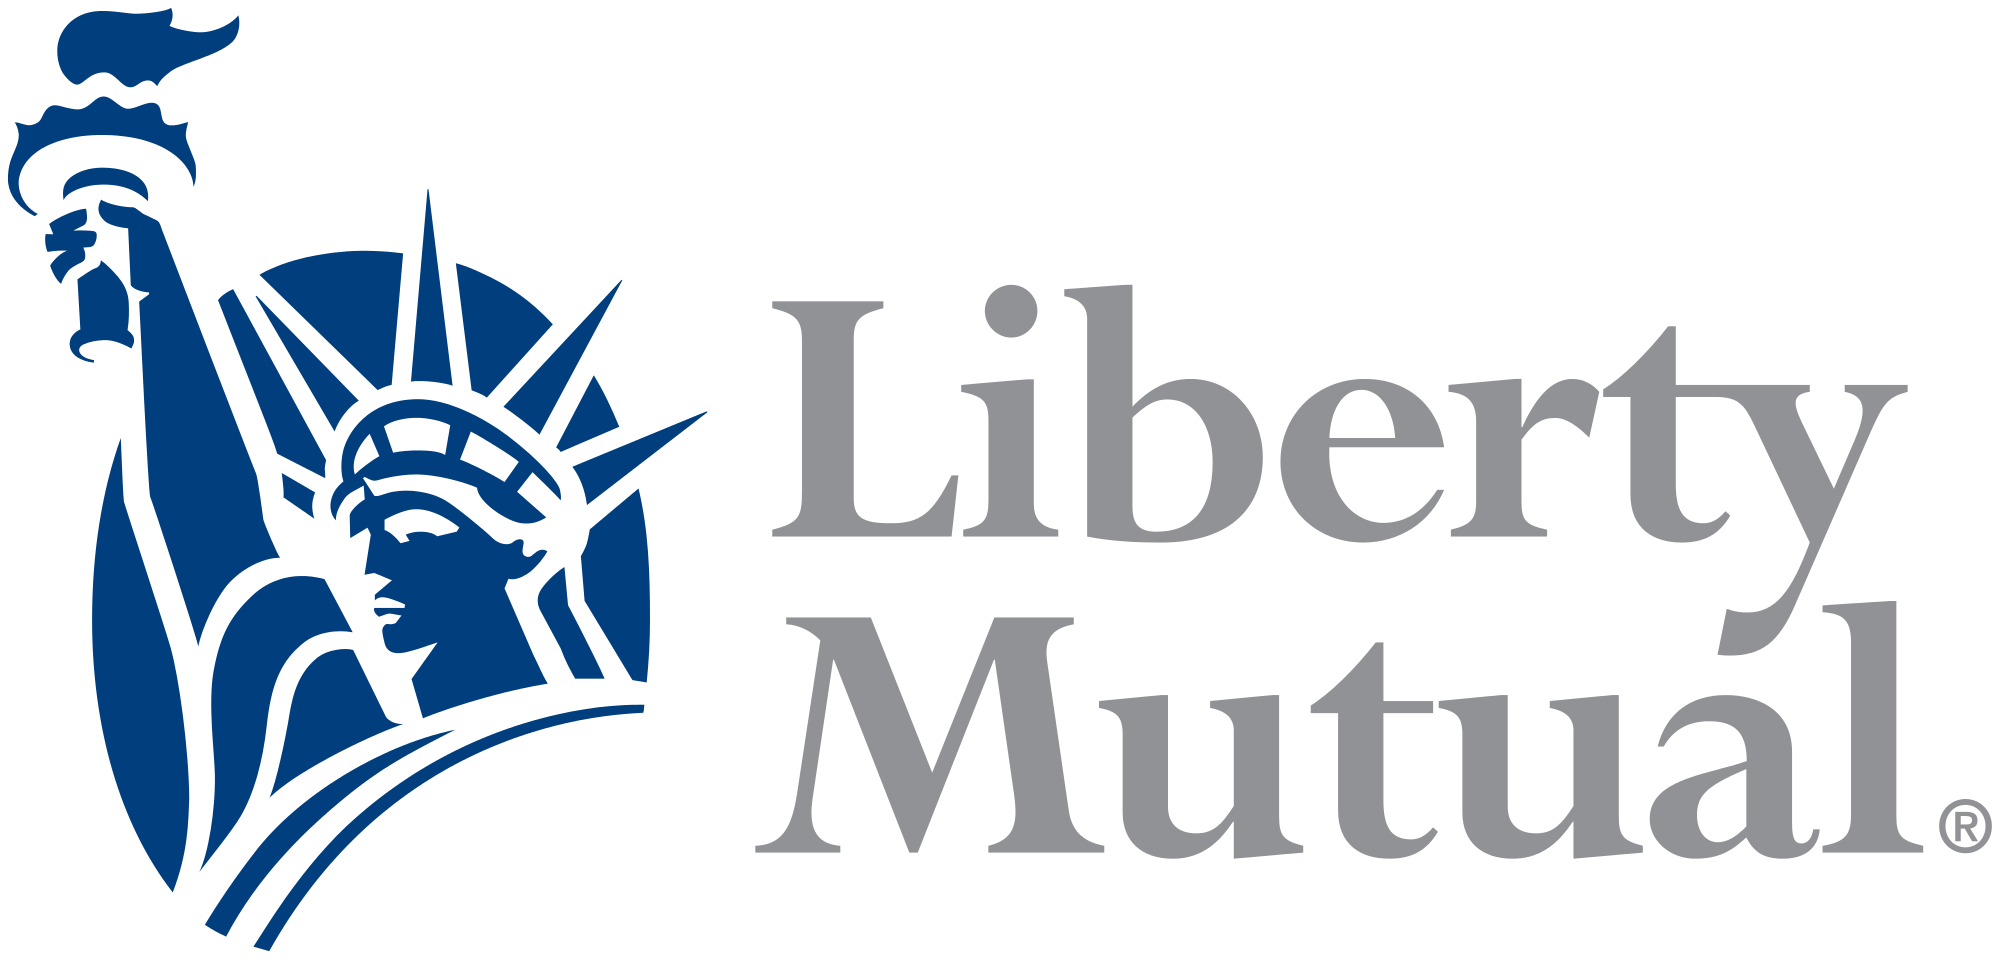 Liberty Mutual Insurance - One of the nations top preferred carriers. Great for homeowners, families with multiple cars and toys.